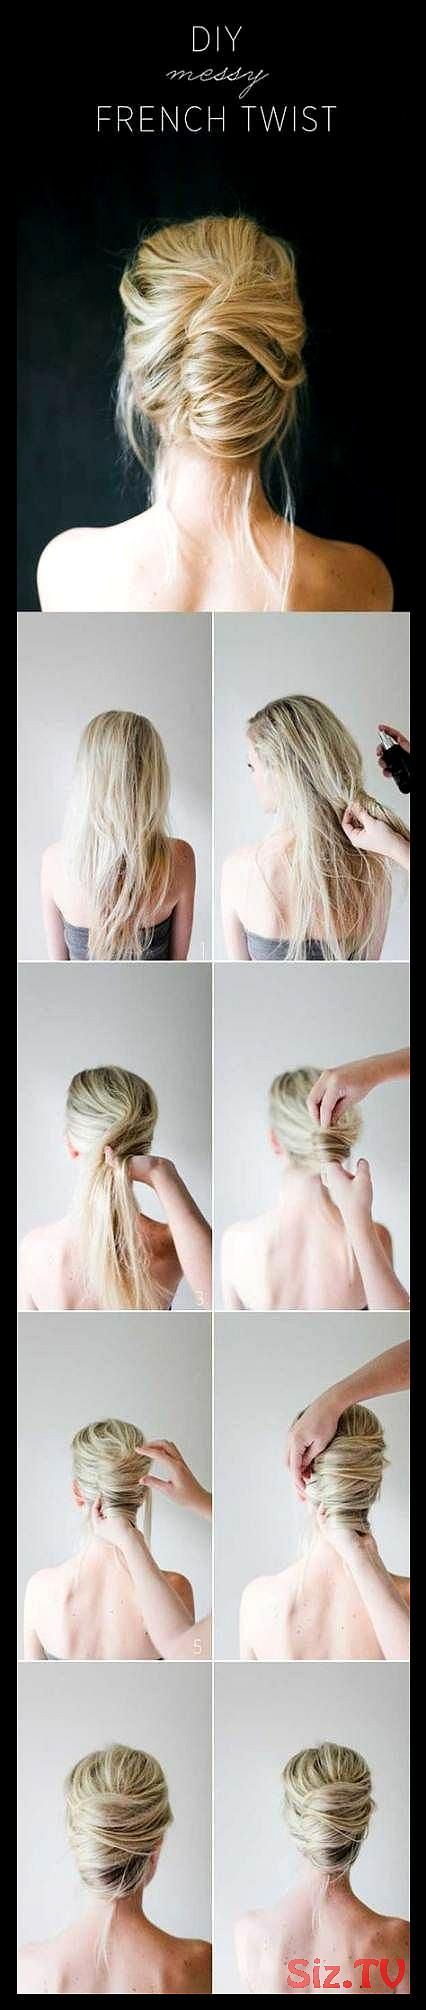 Trendy Hair Styles Easy Quick Mornings Messy Buns 32 Ideas Trendy Hair Styles Ea... ,  #Buns ...